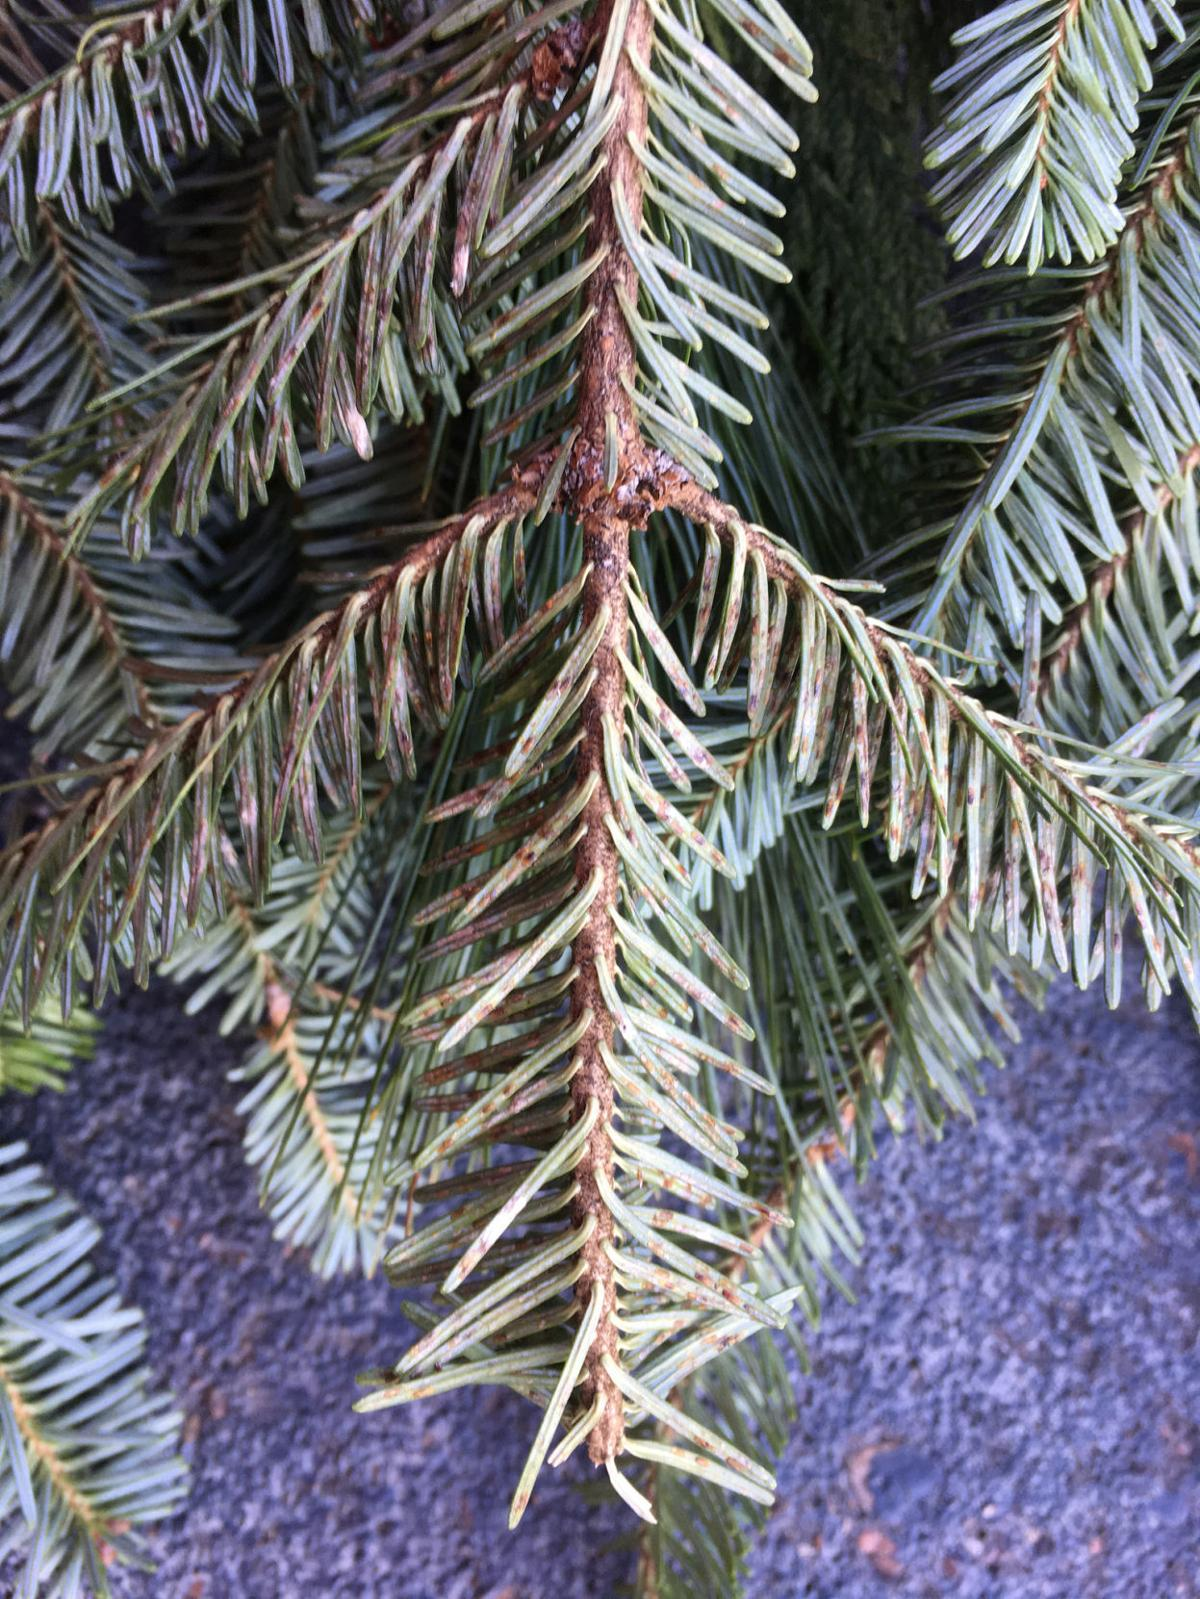 Christmas trees still OK to recycle, but throw away wreaths